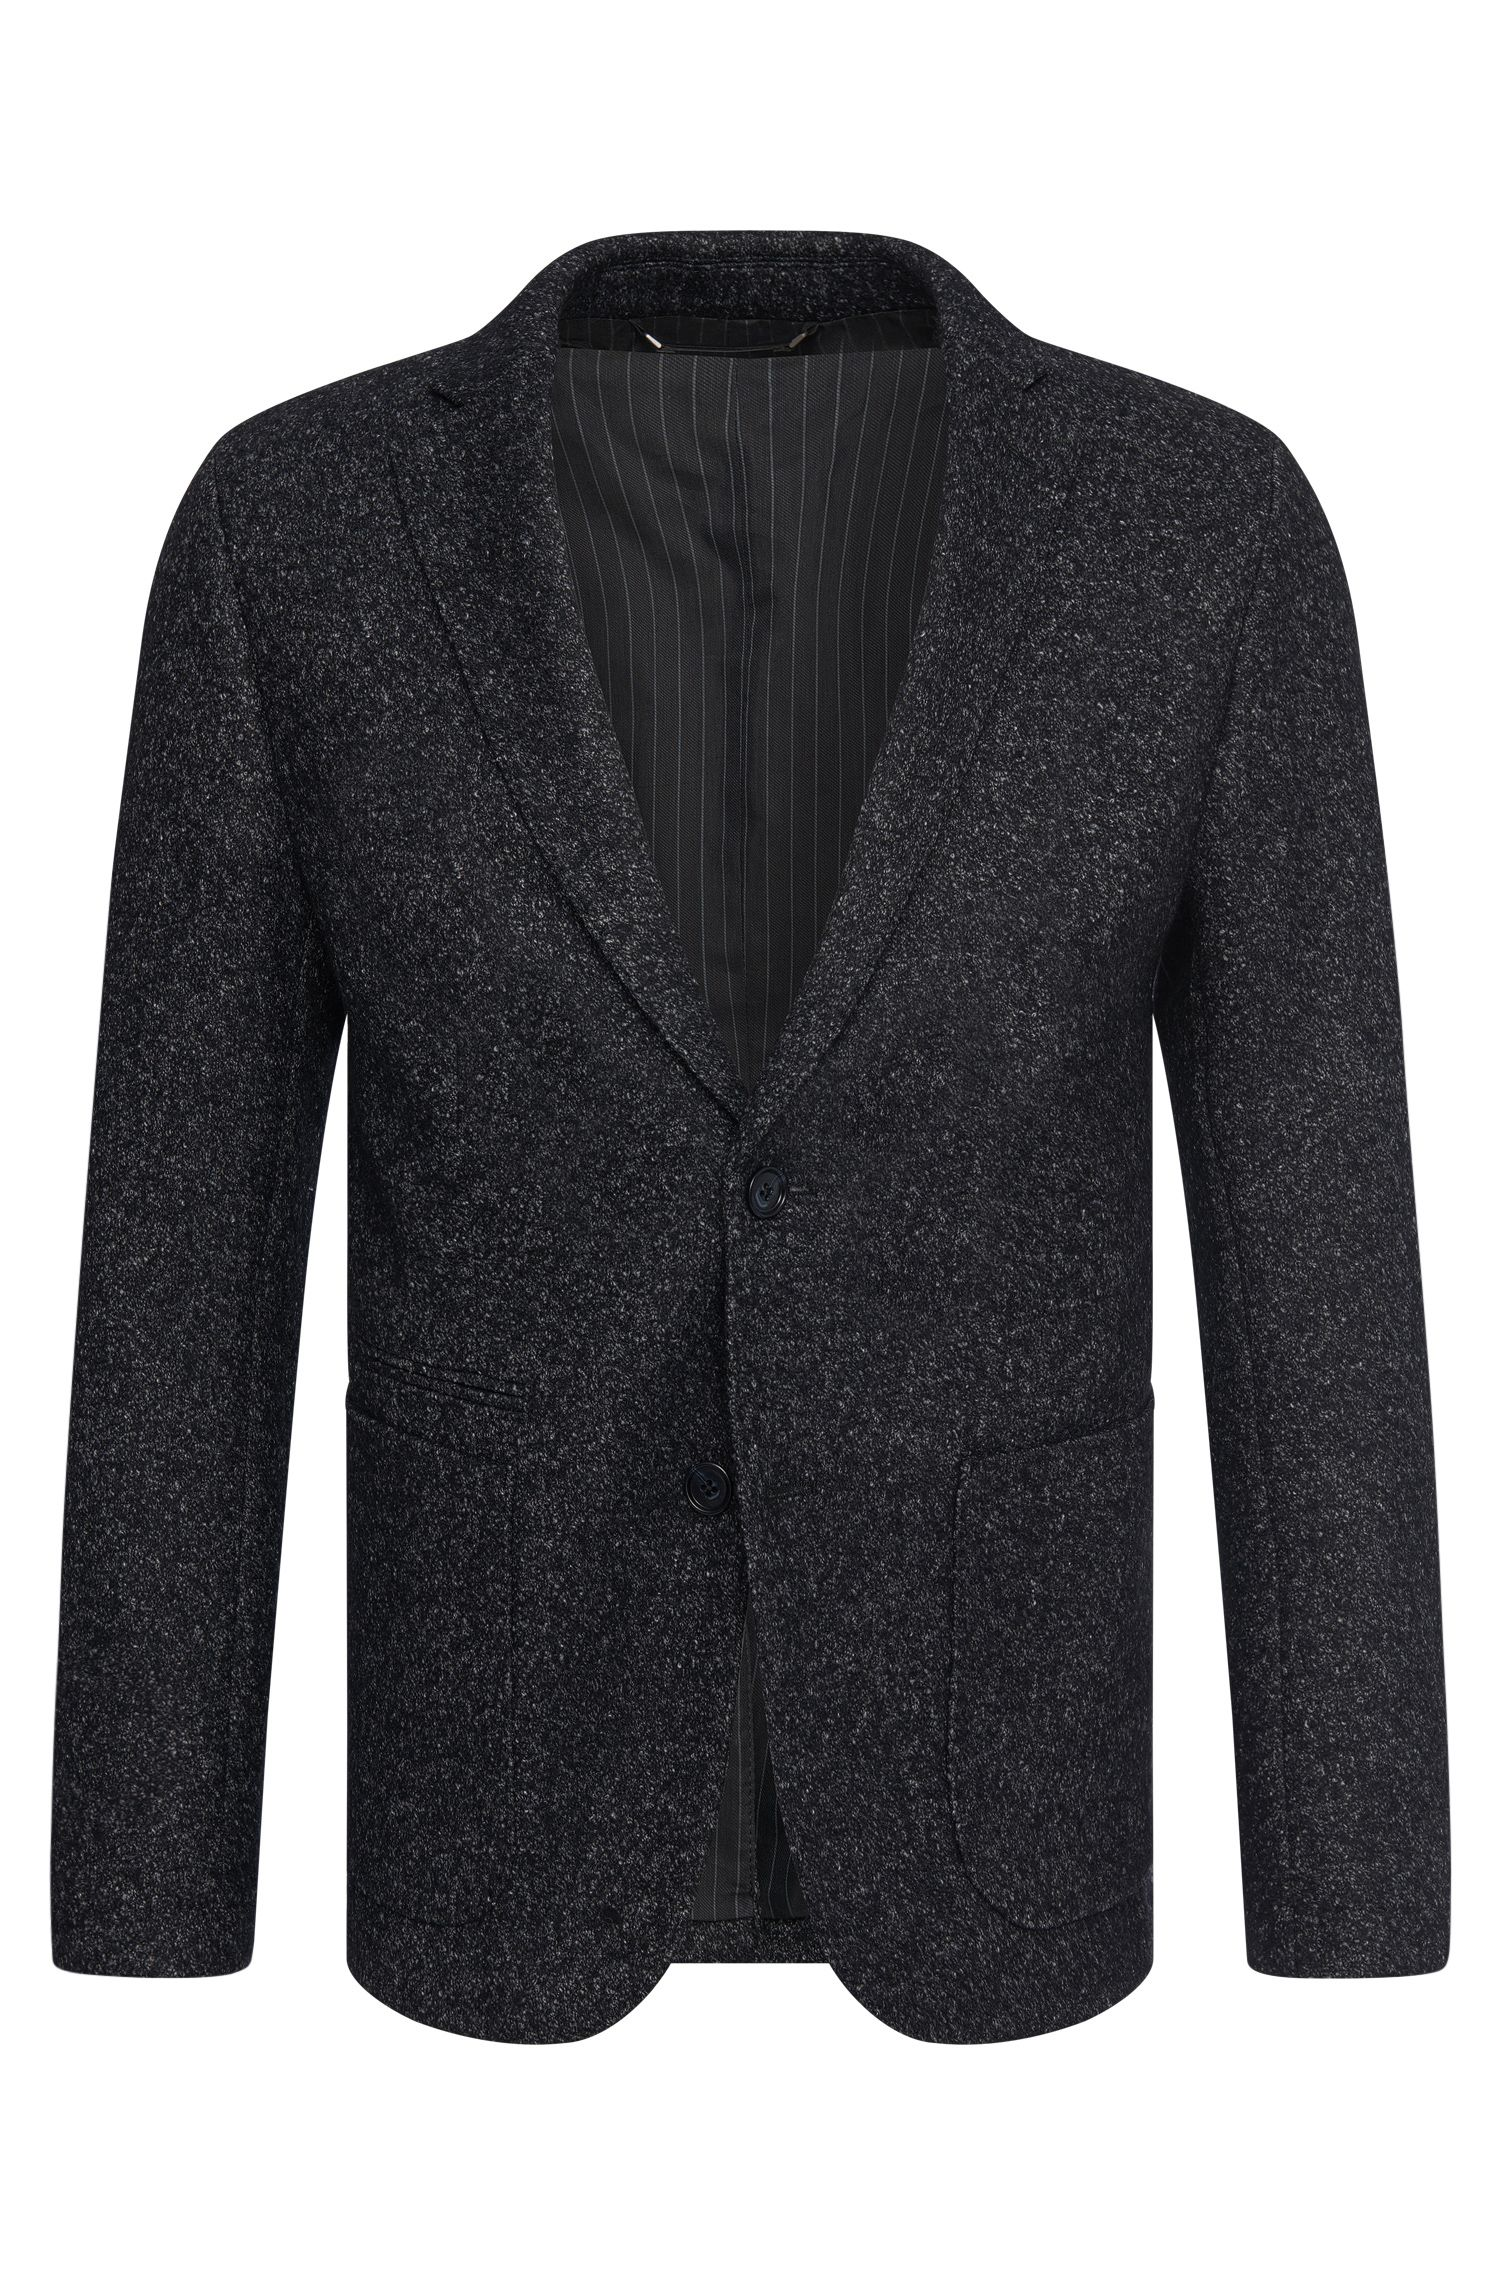 Veste de costume Slim Fit Tailored chiné en laine vierge mélangée : « T-Narvik-W »